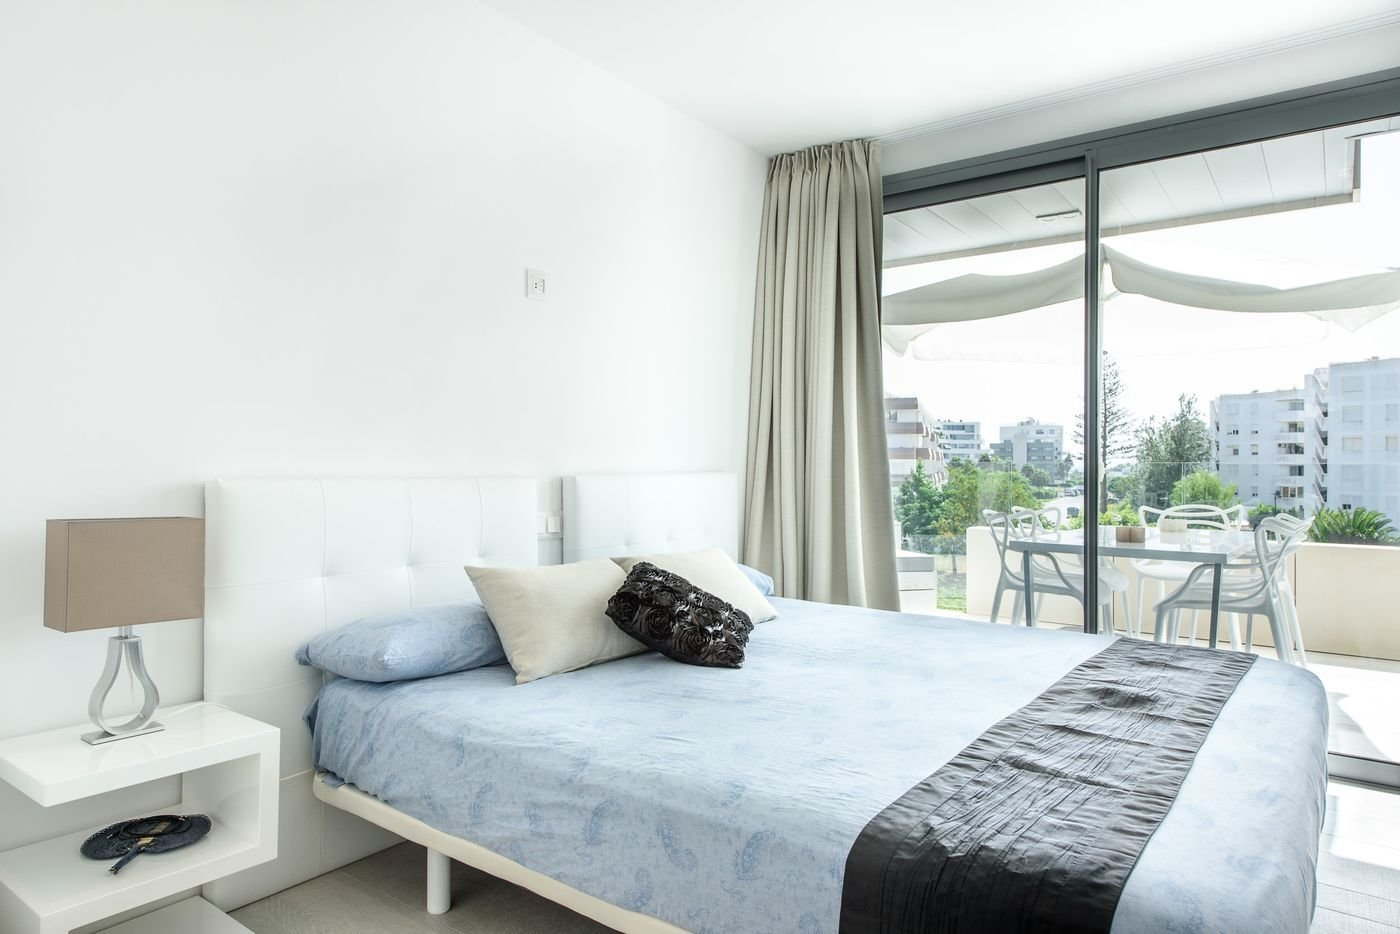 Best 2 Bedroom Apartment For Sale In The White Angel Ibiza With Pictures Original 1024 x 768